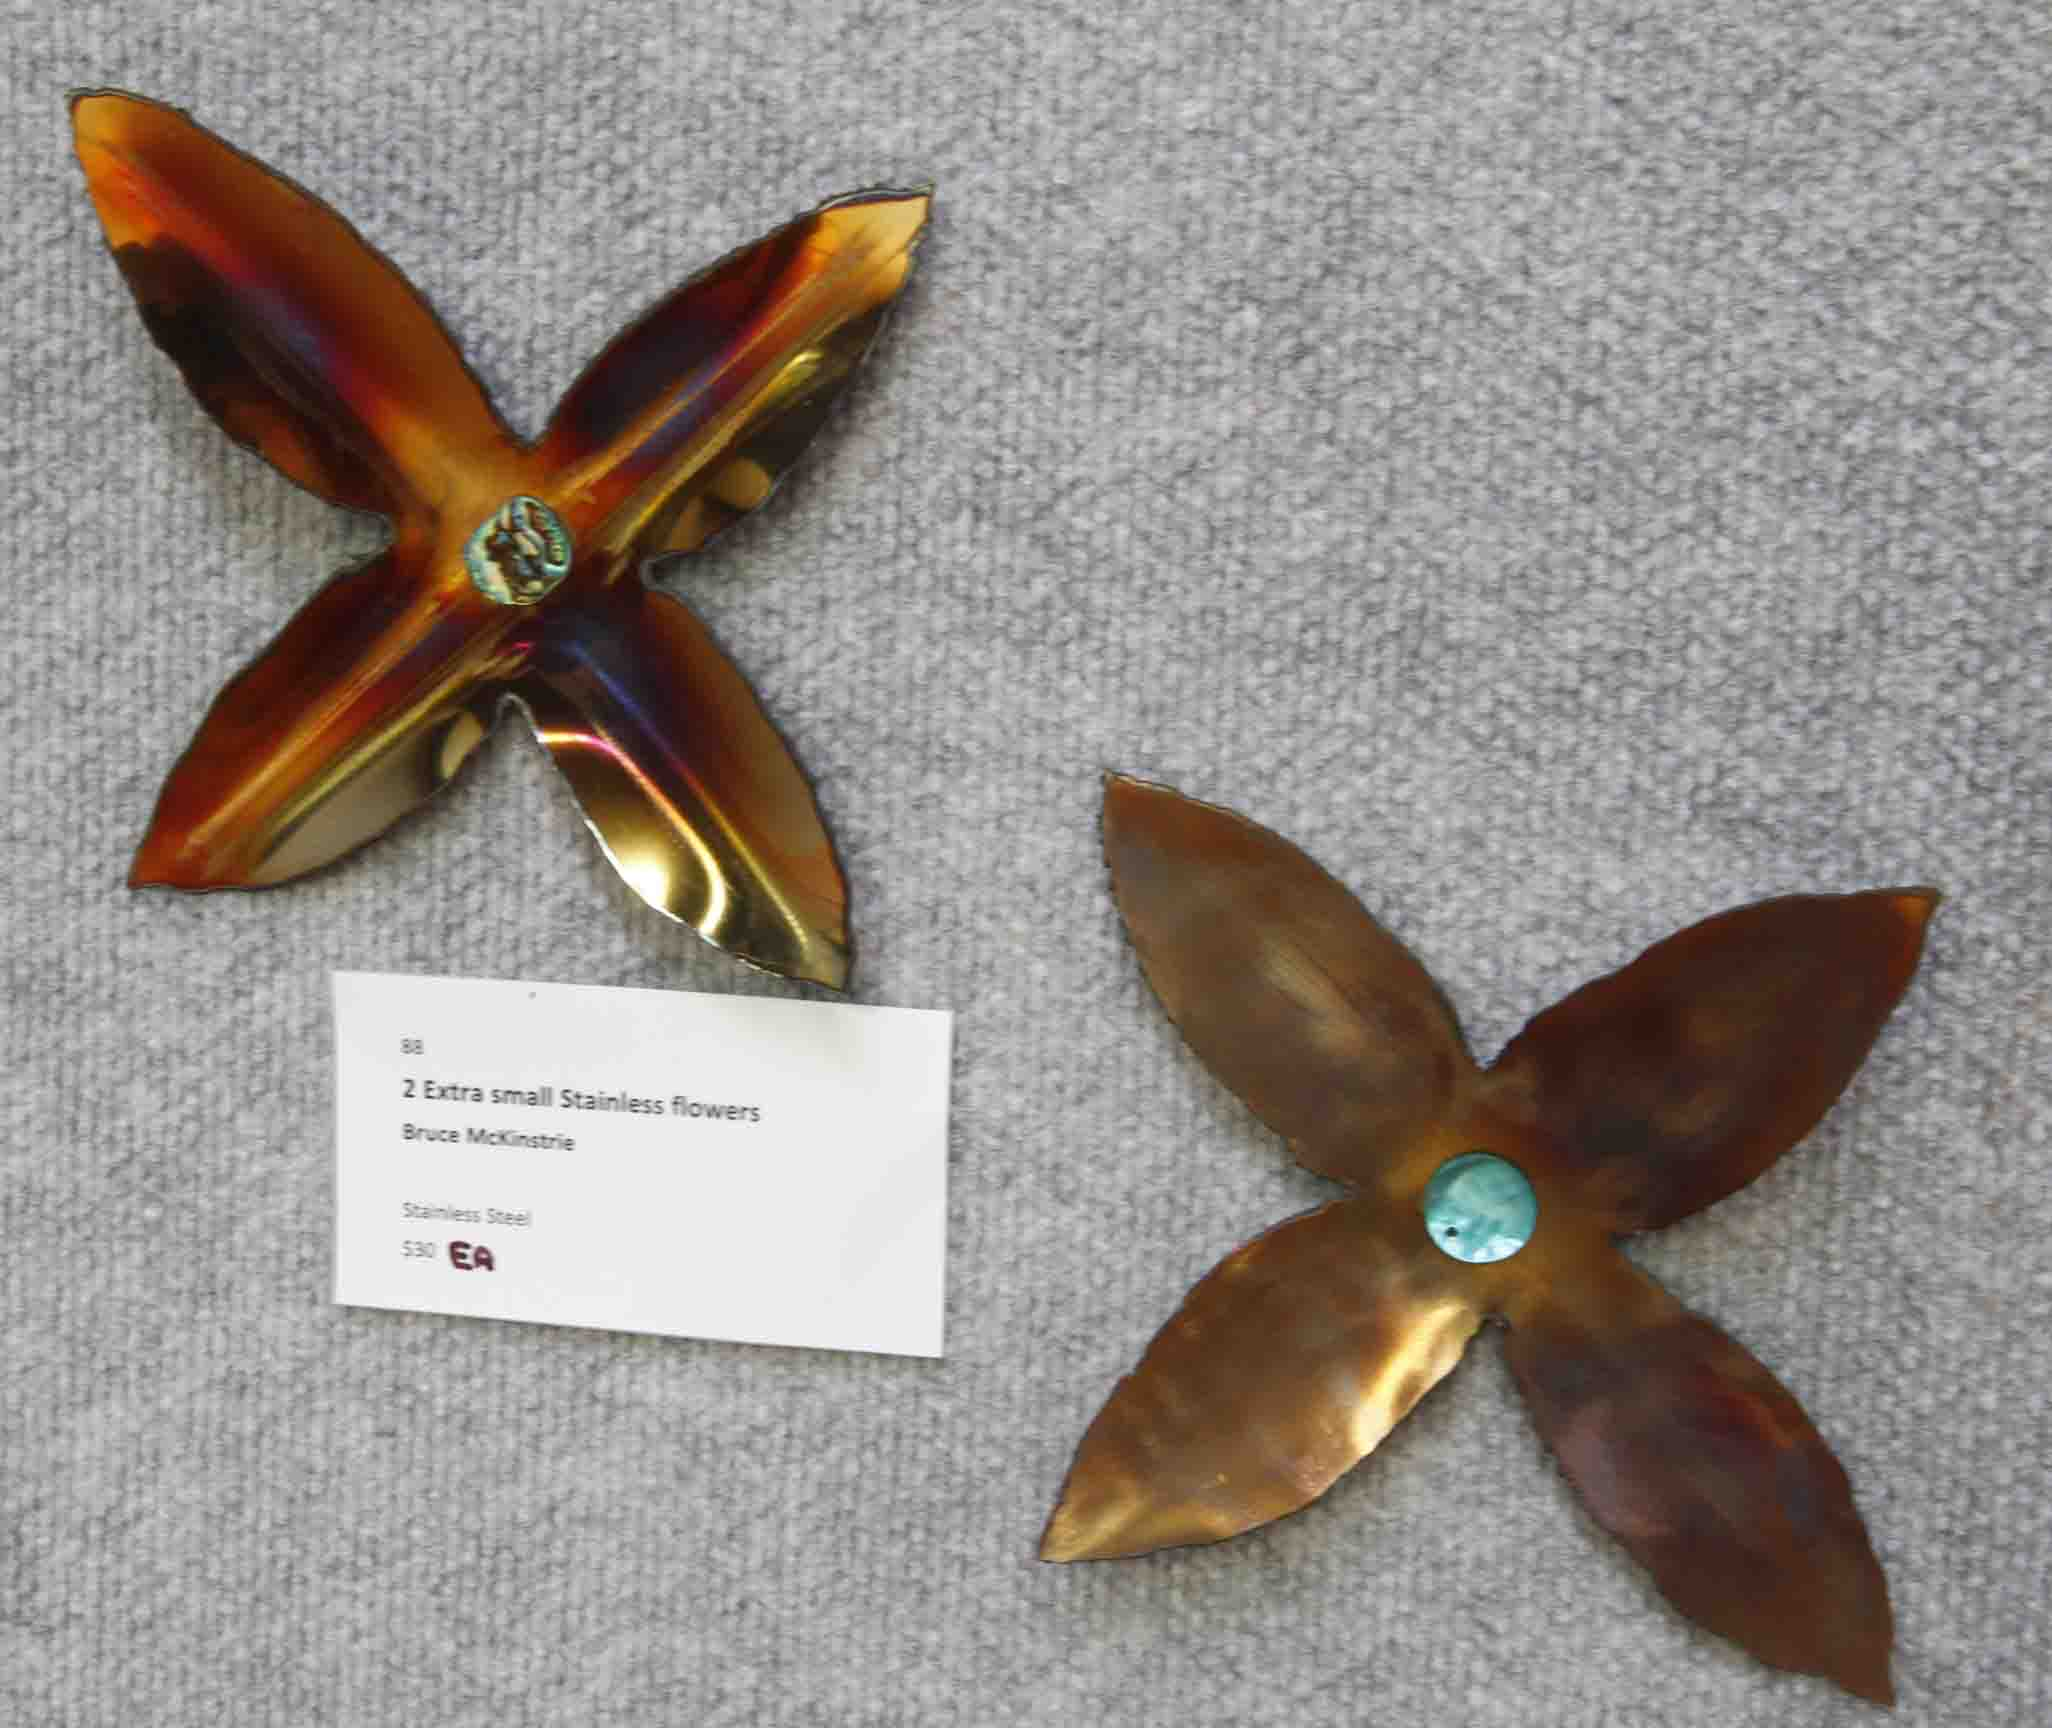 Bruce McKinstrie-2 Extra small stainless flowers-$30each.jpg